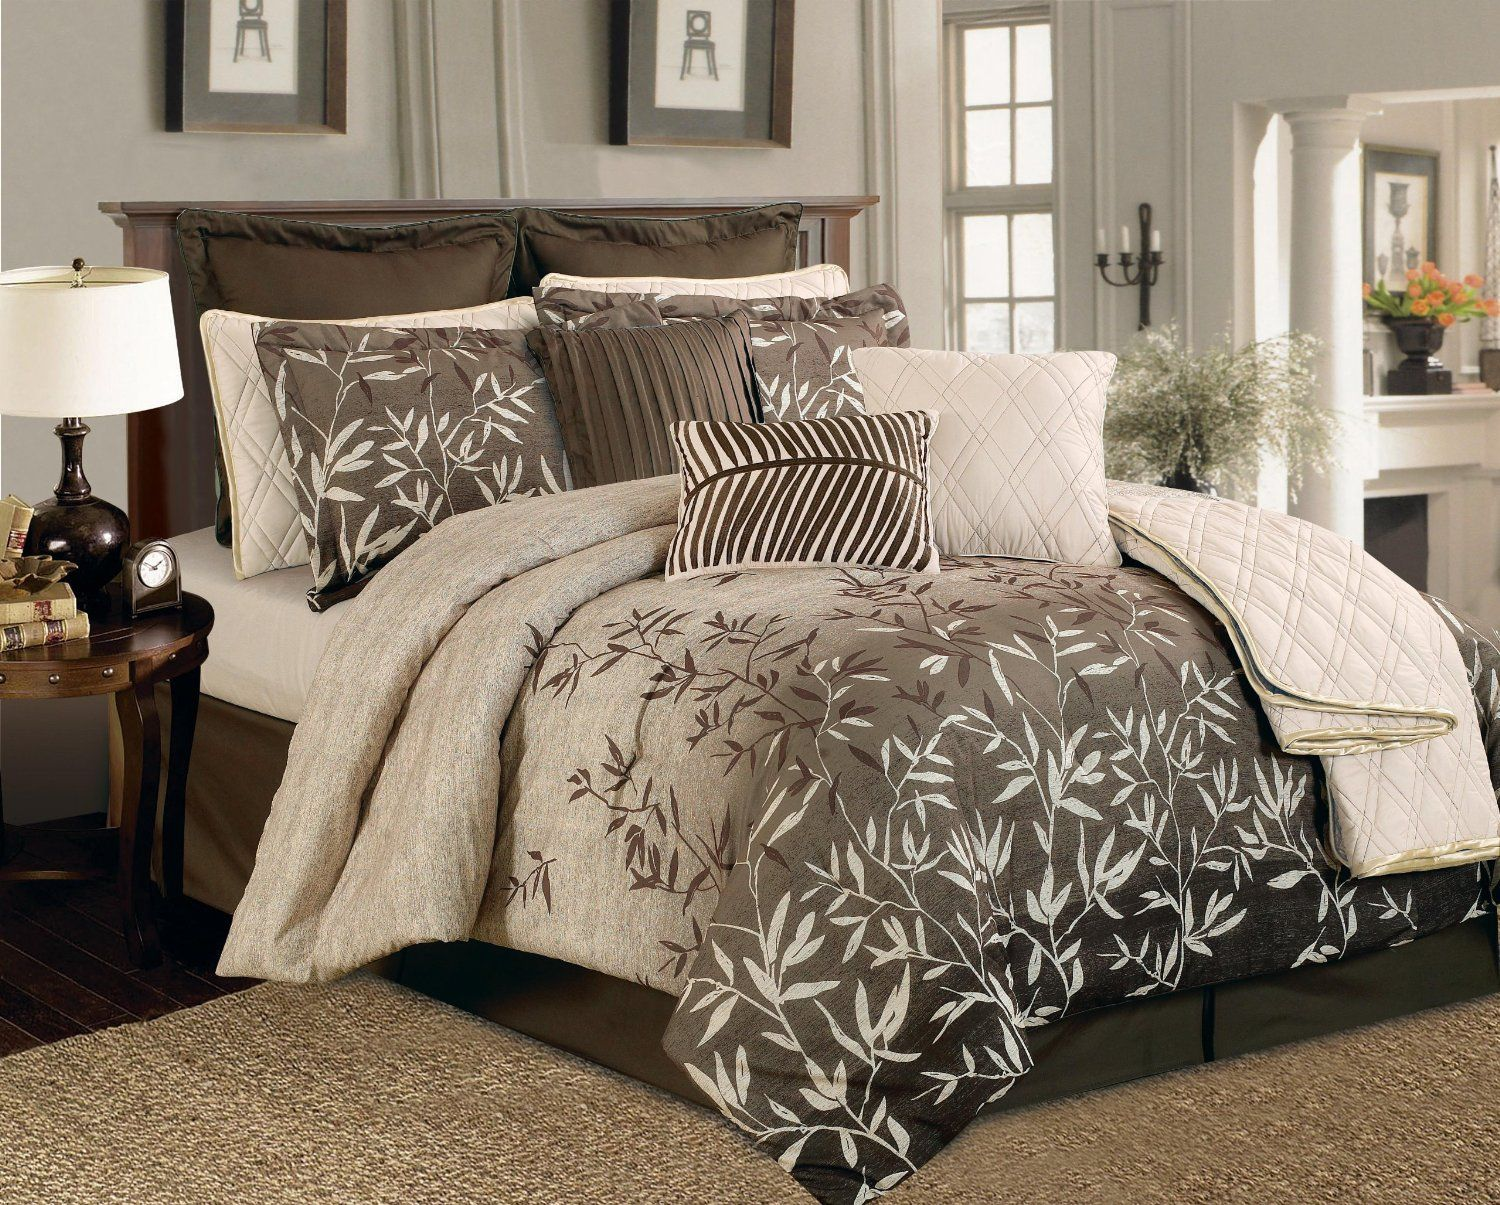 Amazon.com - 12 Pieces Taupe Luxury Comforter Set Bed-in-a-bag Queen Size Bedding Primrose -